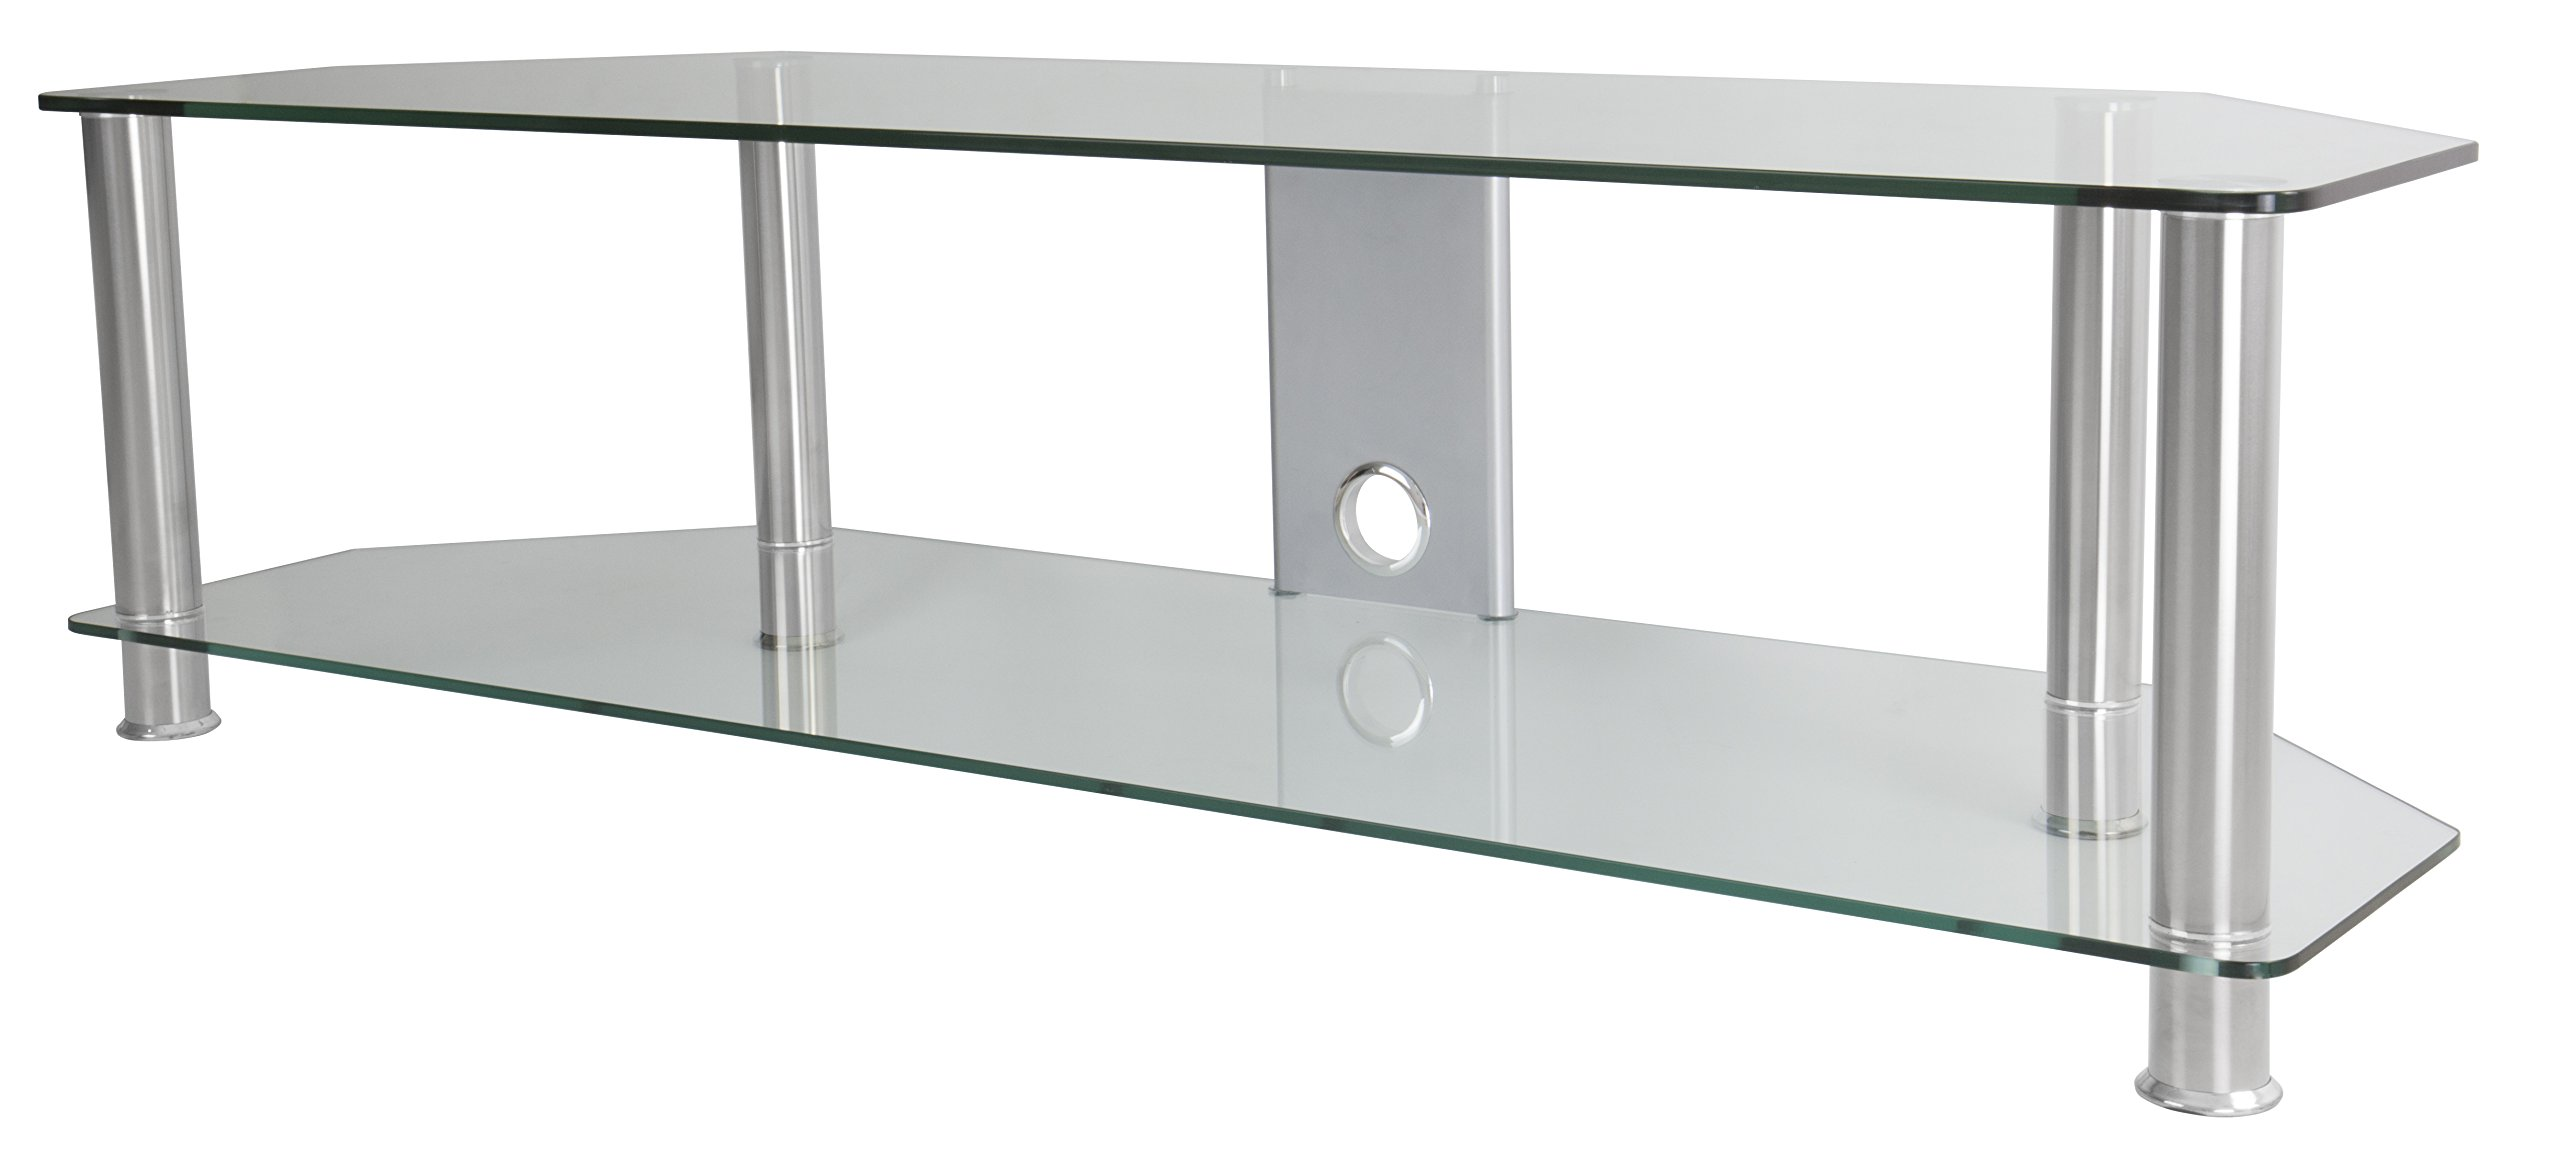 AVF SDC1400CMCC-A  TV Stand with Cable Management for up to 65-inch TVs, Clear Glass, Chrome Legs by AVF